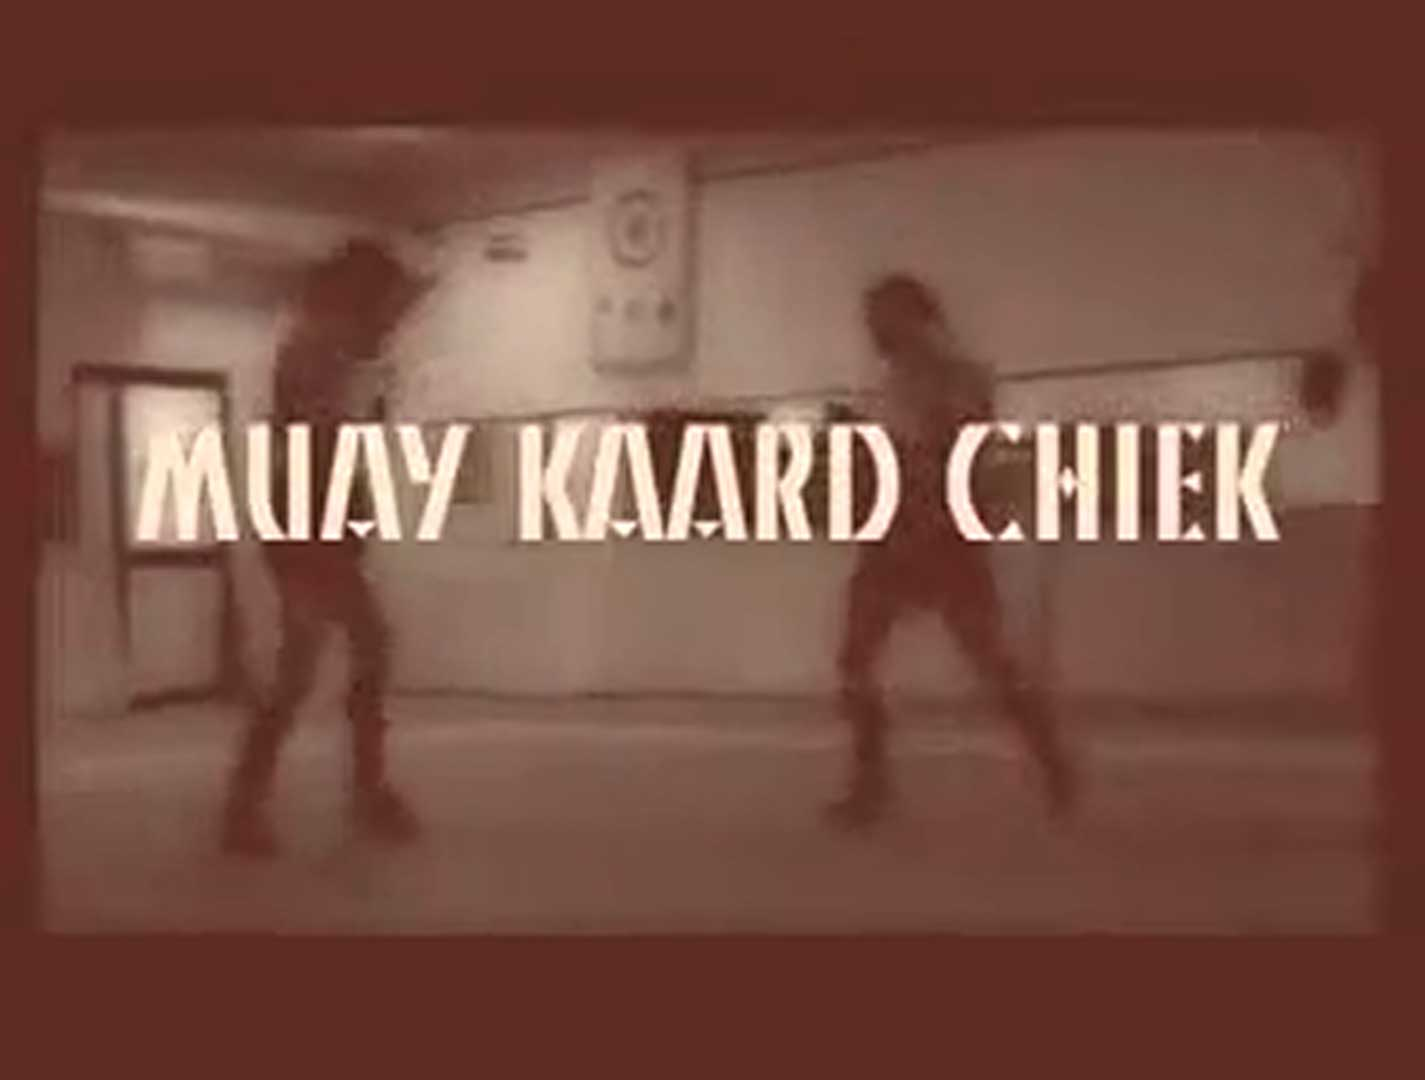 IMBA Muay Kard Chiek Video